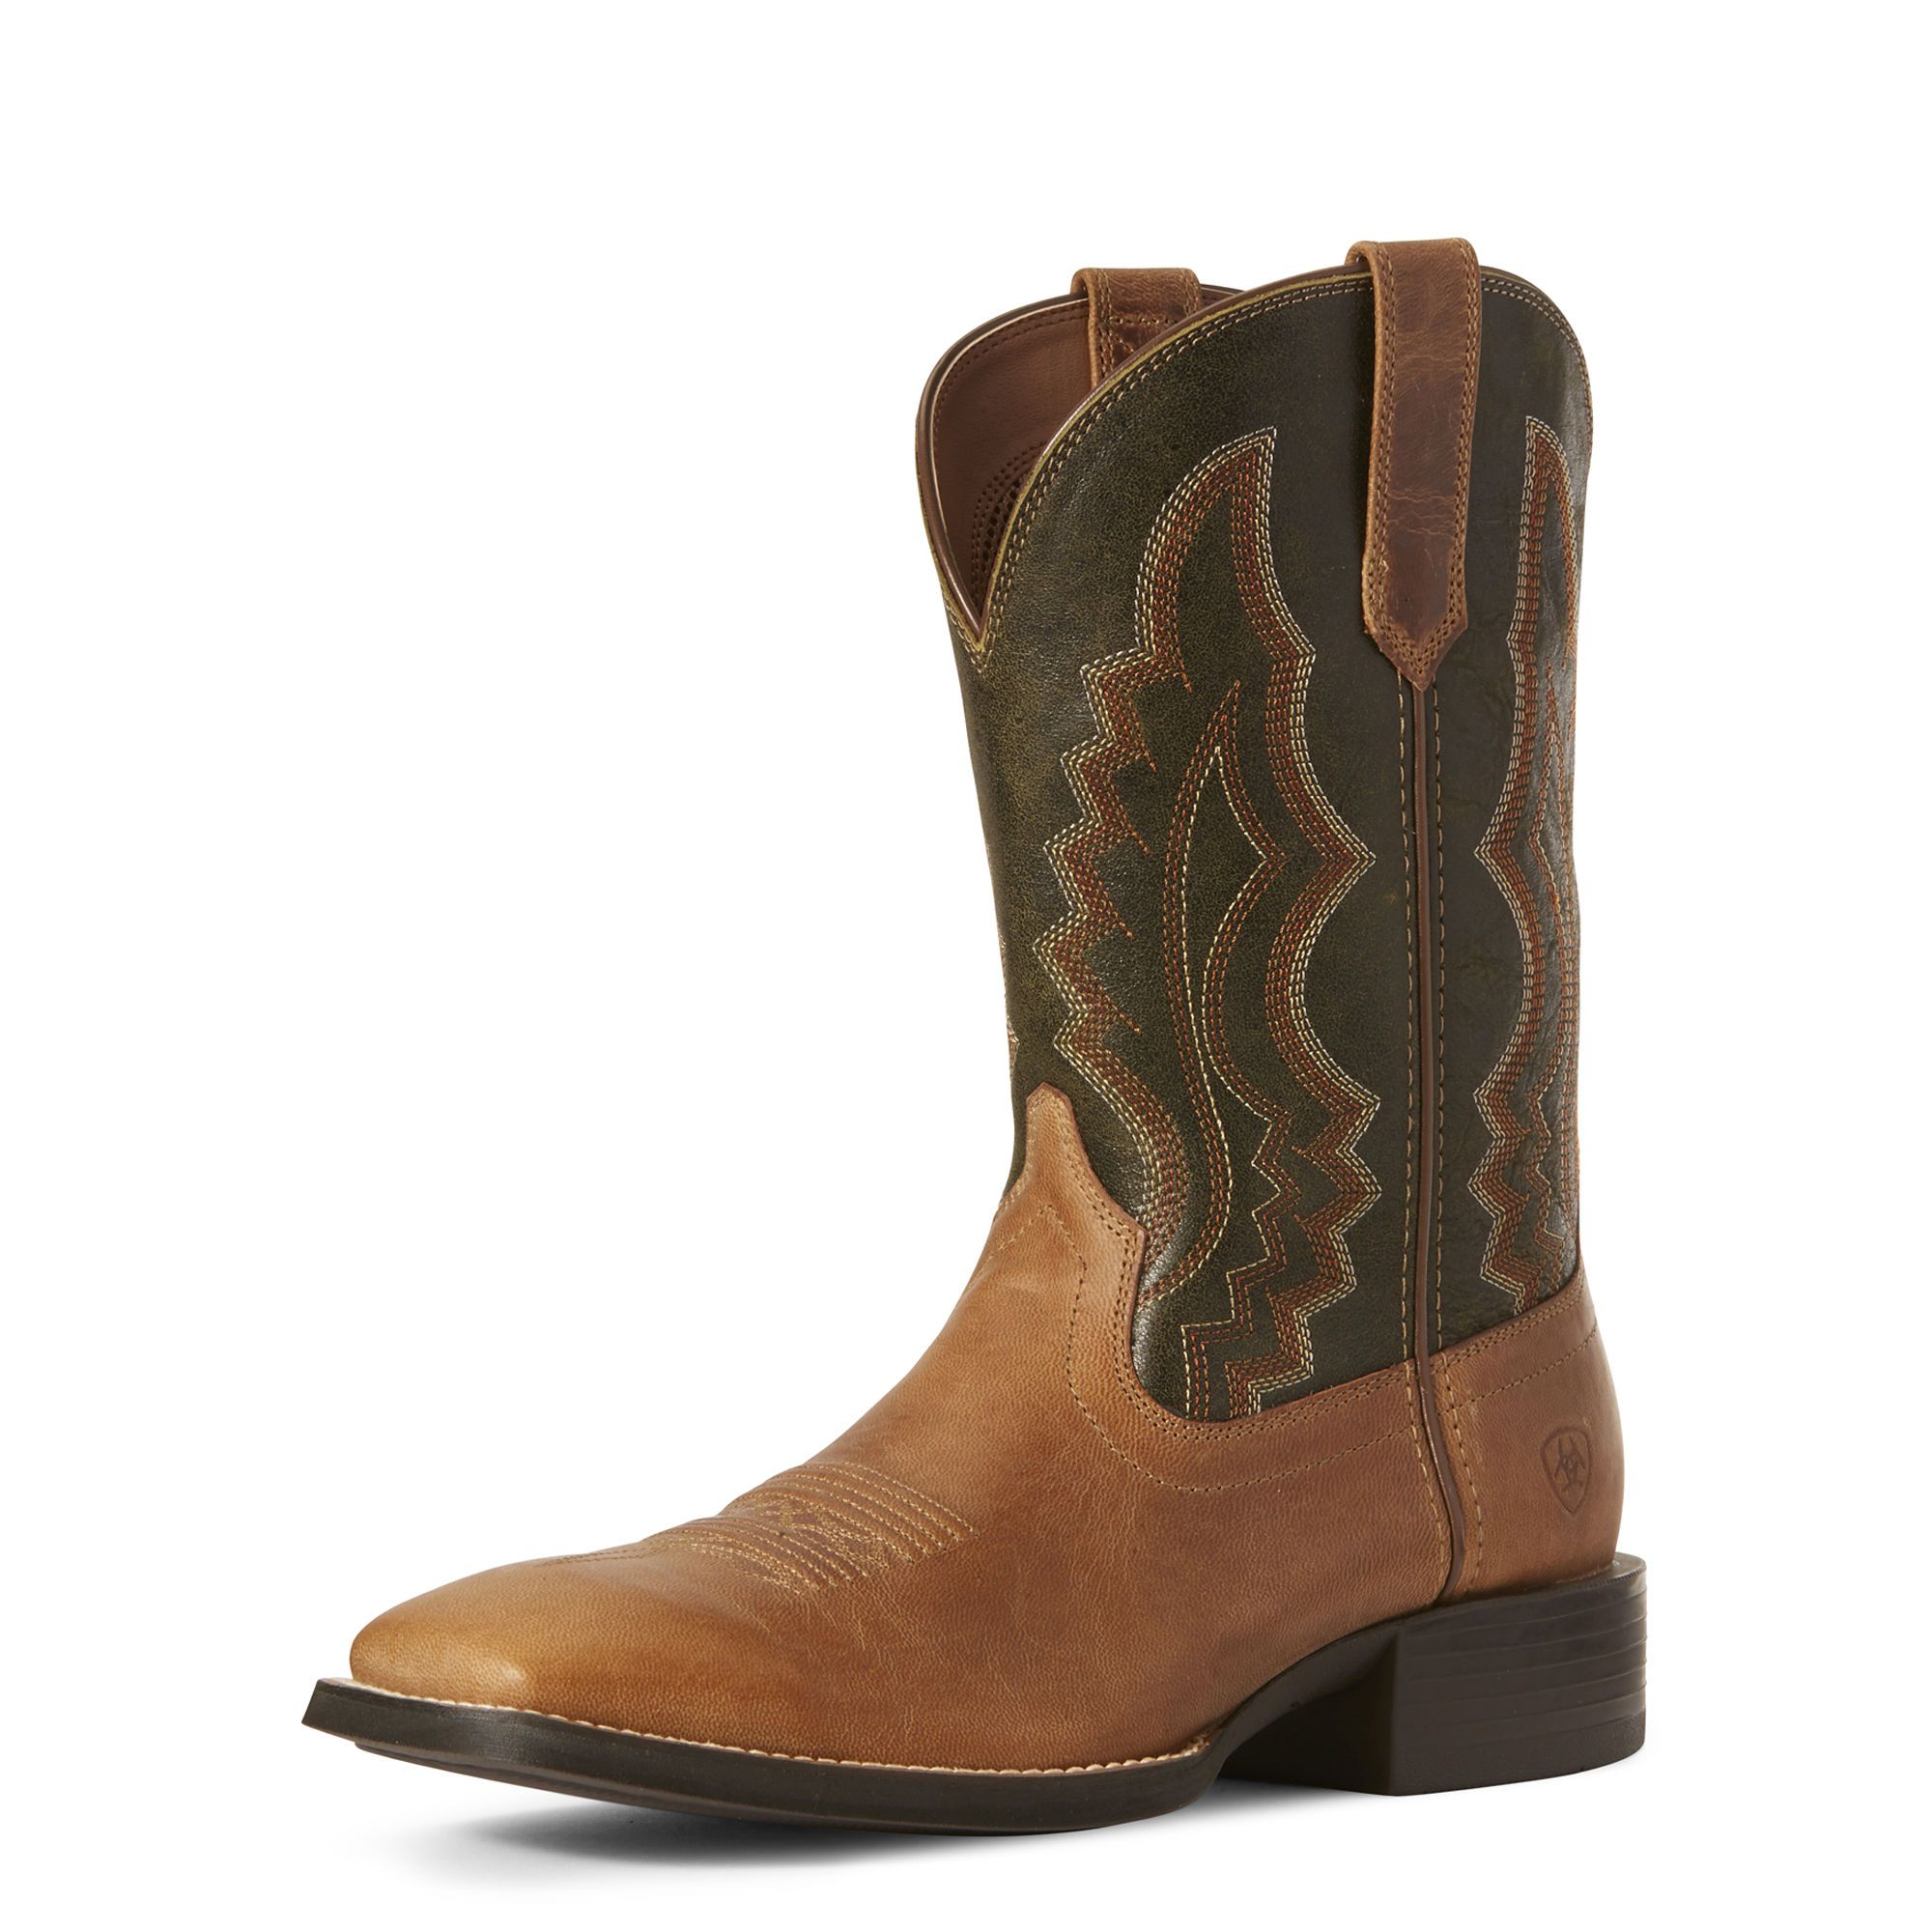 Sport Riggin Western Boot Western boots, Boots, Leather